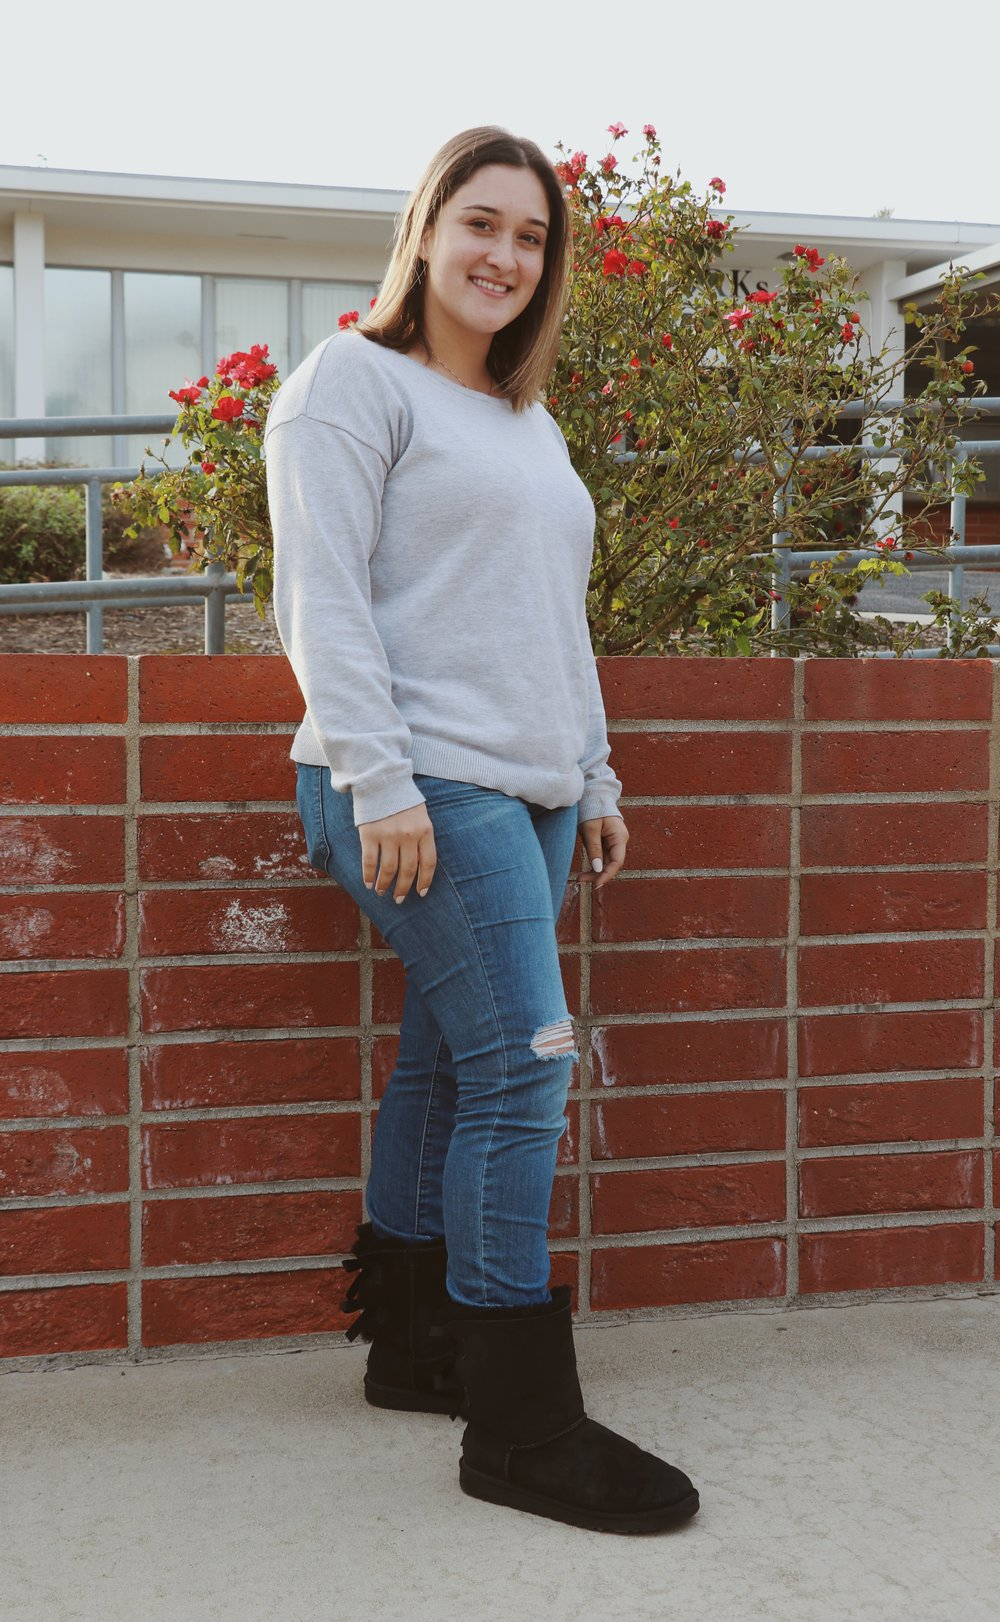 Chaffey student Emma Donnelly displays the epitome of casual comfort in a relaxed sweater, slightly distressed jeans and comfortable soft black boots.